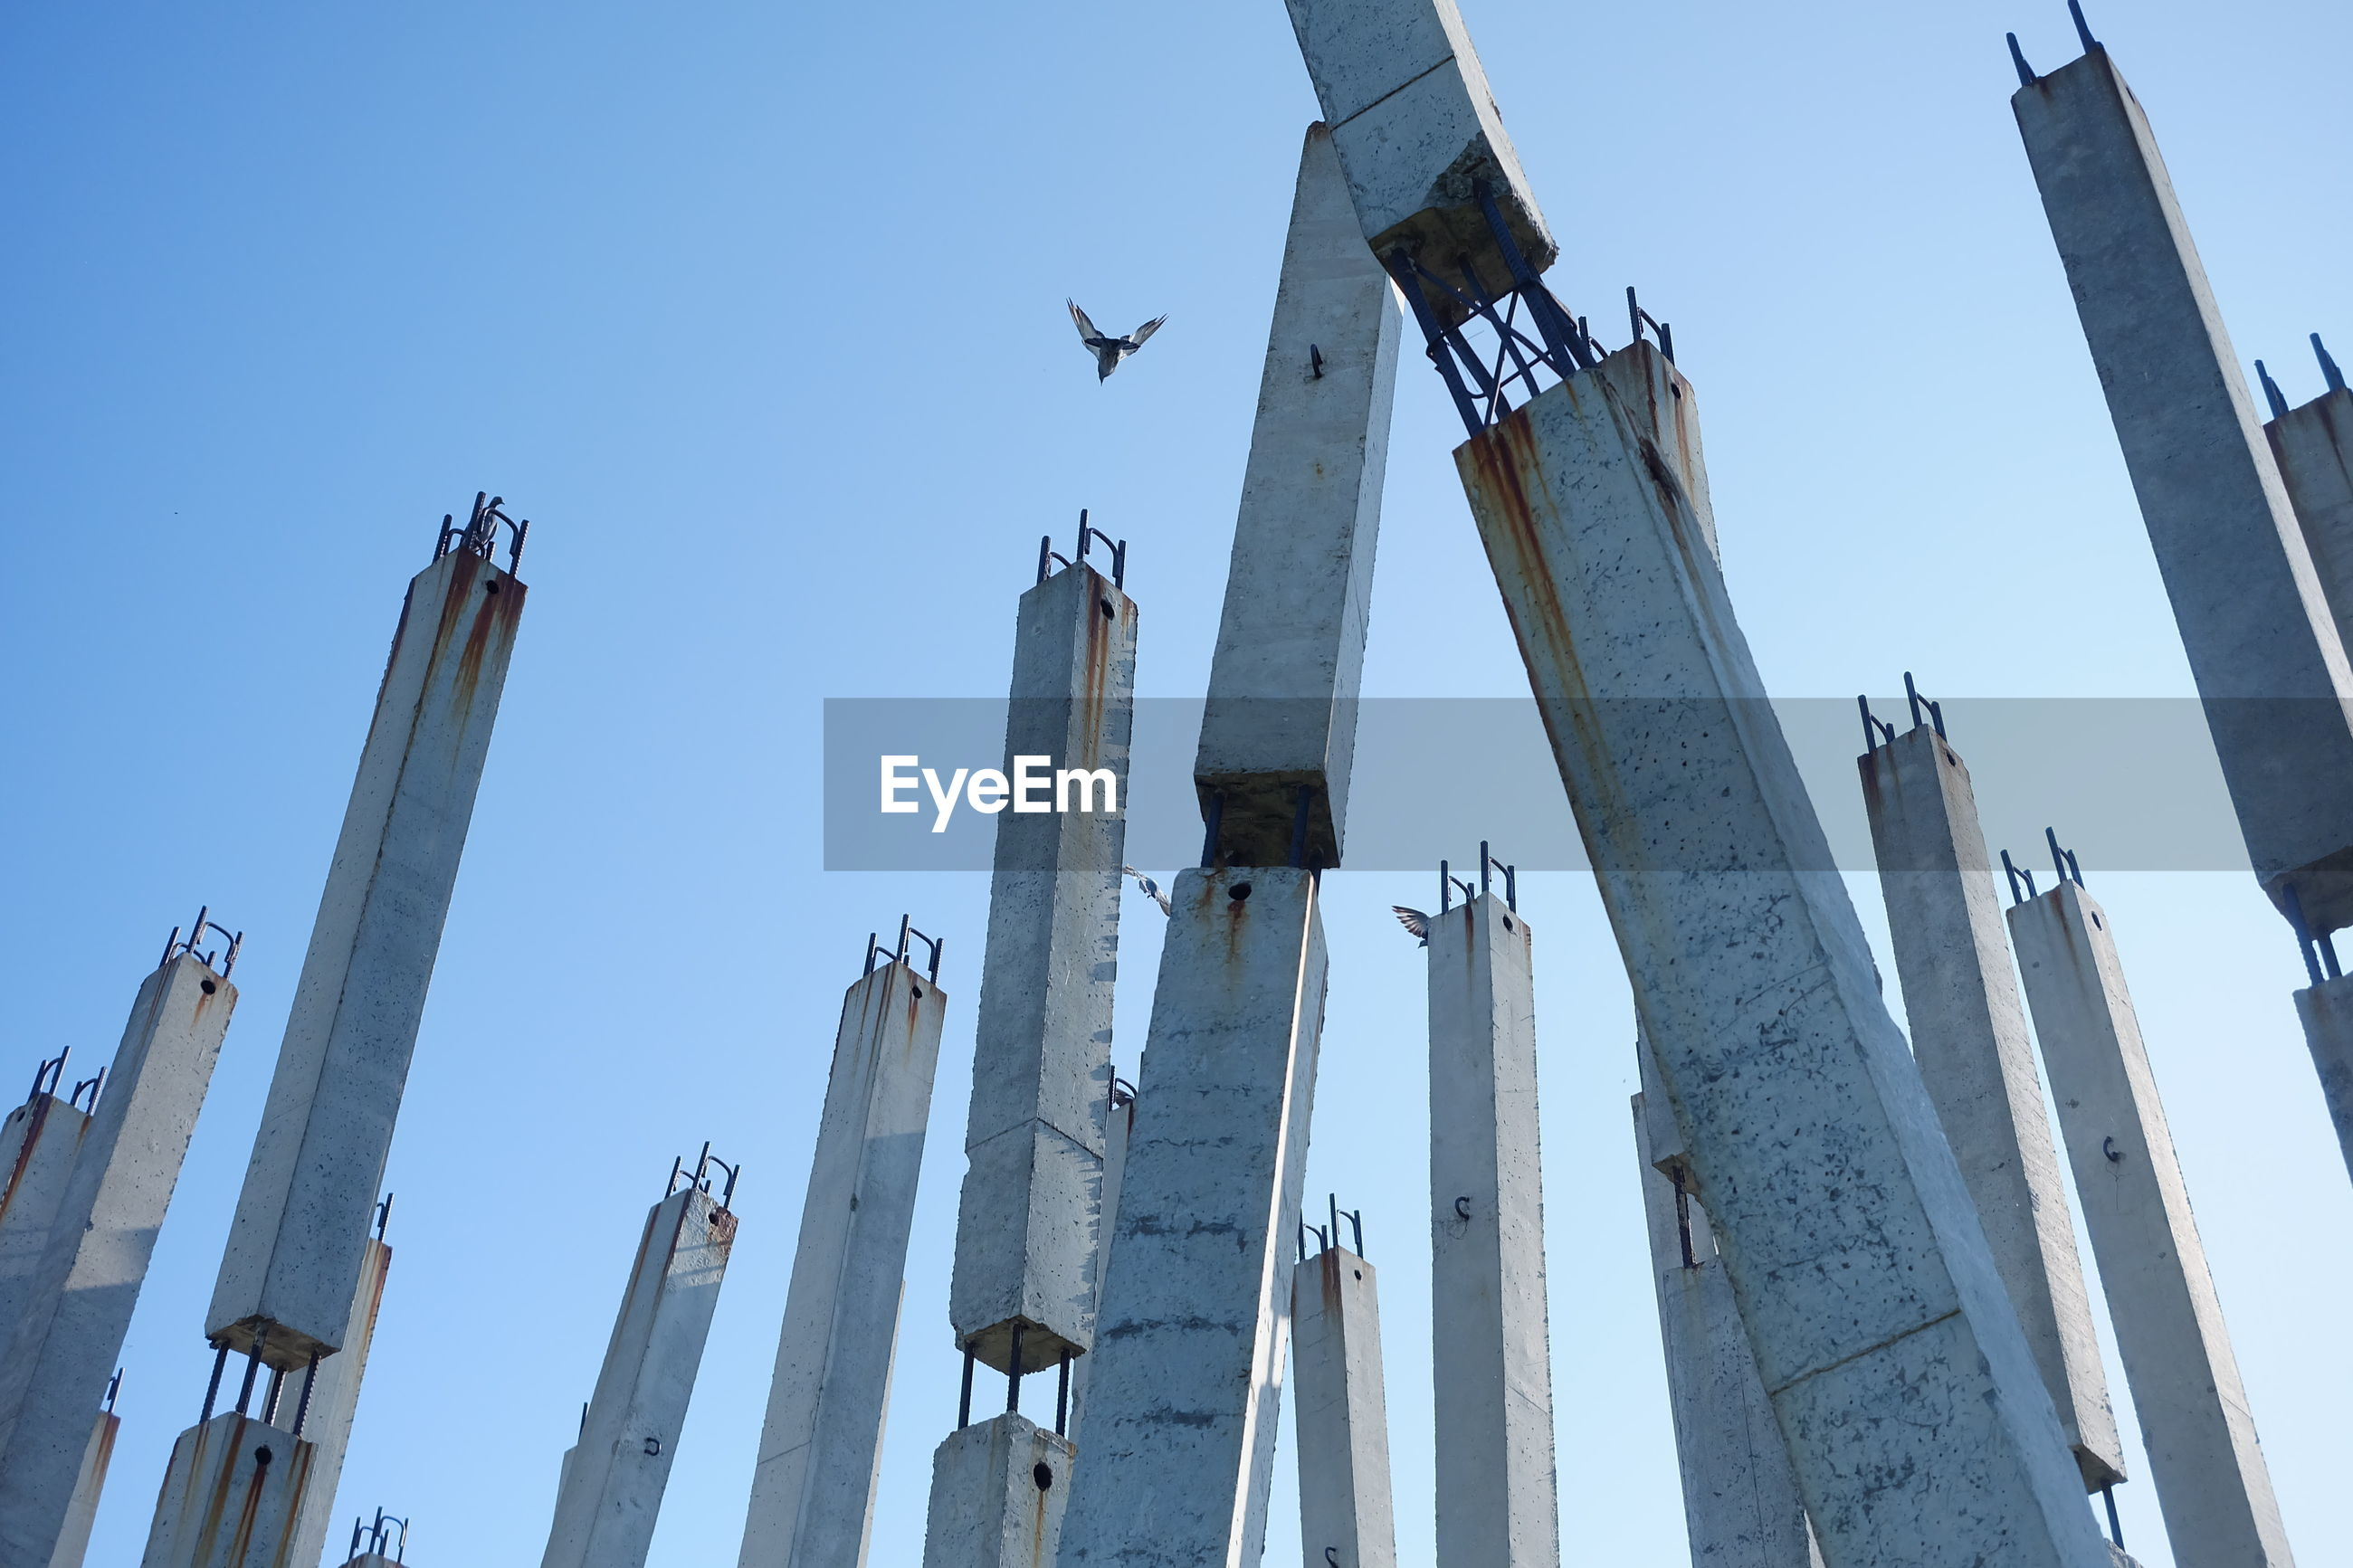 LOW ANGLE VIEW OF BIRDS FLYING OVER BUILDINGS AGAINST CLEAR SKY